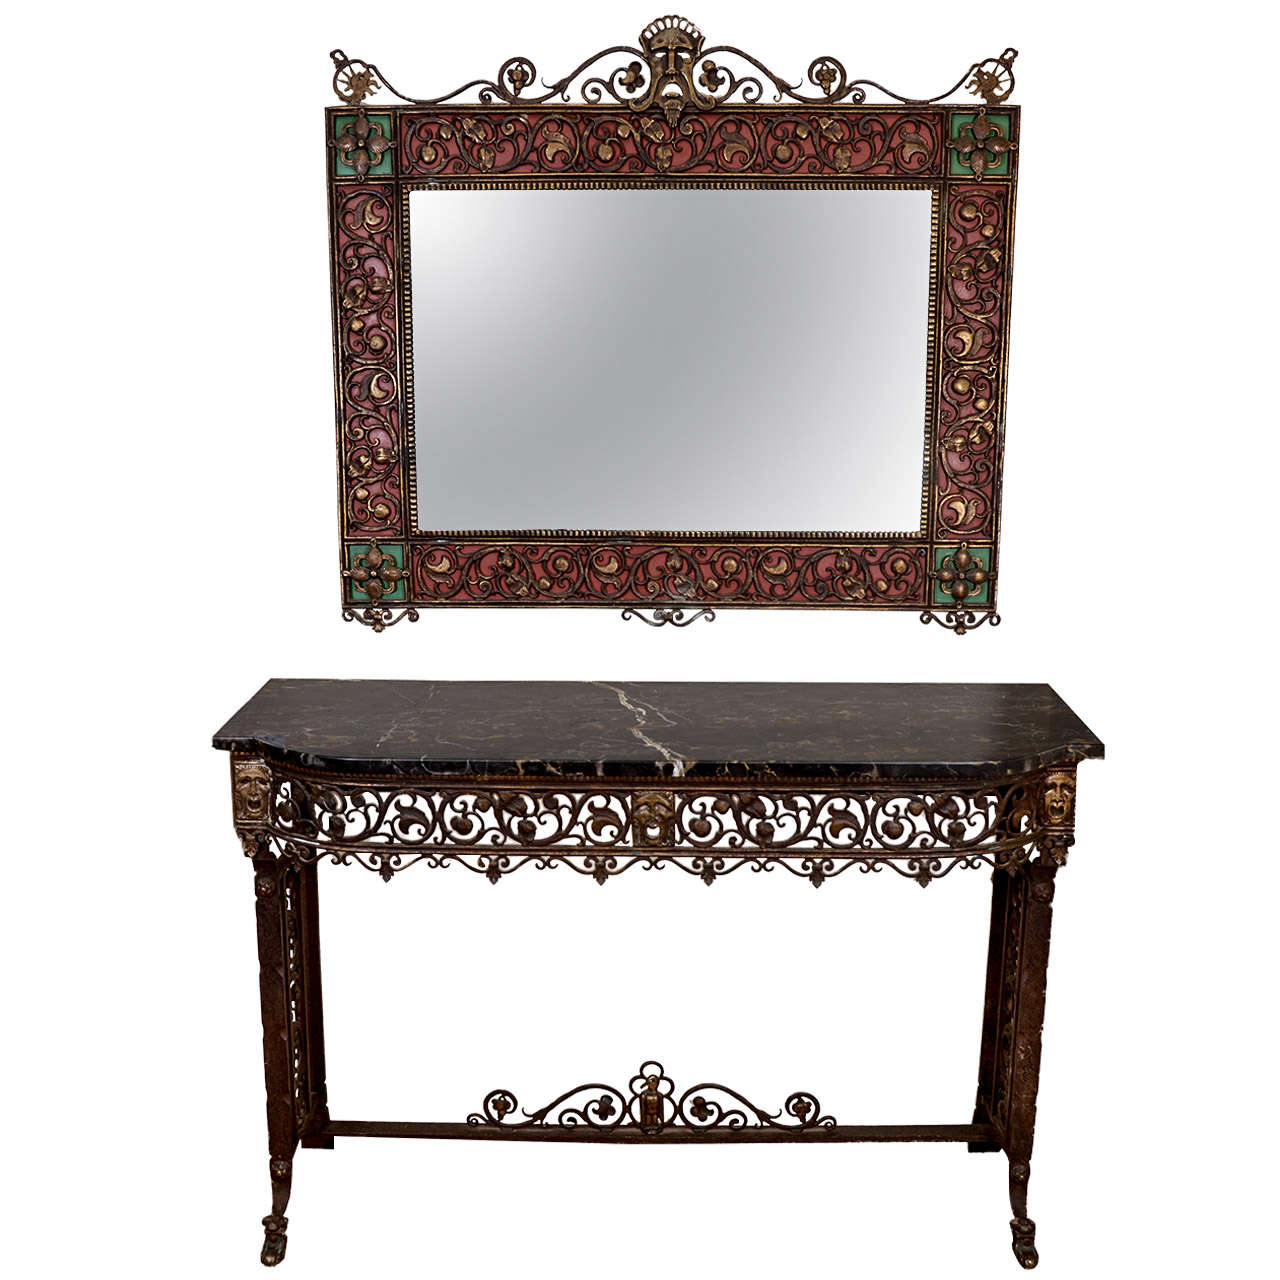 Art Deco Oscar Bach Console and Mirror Set